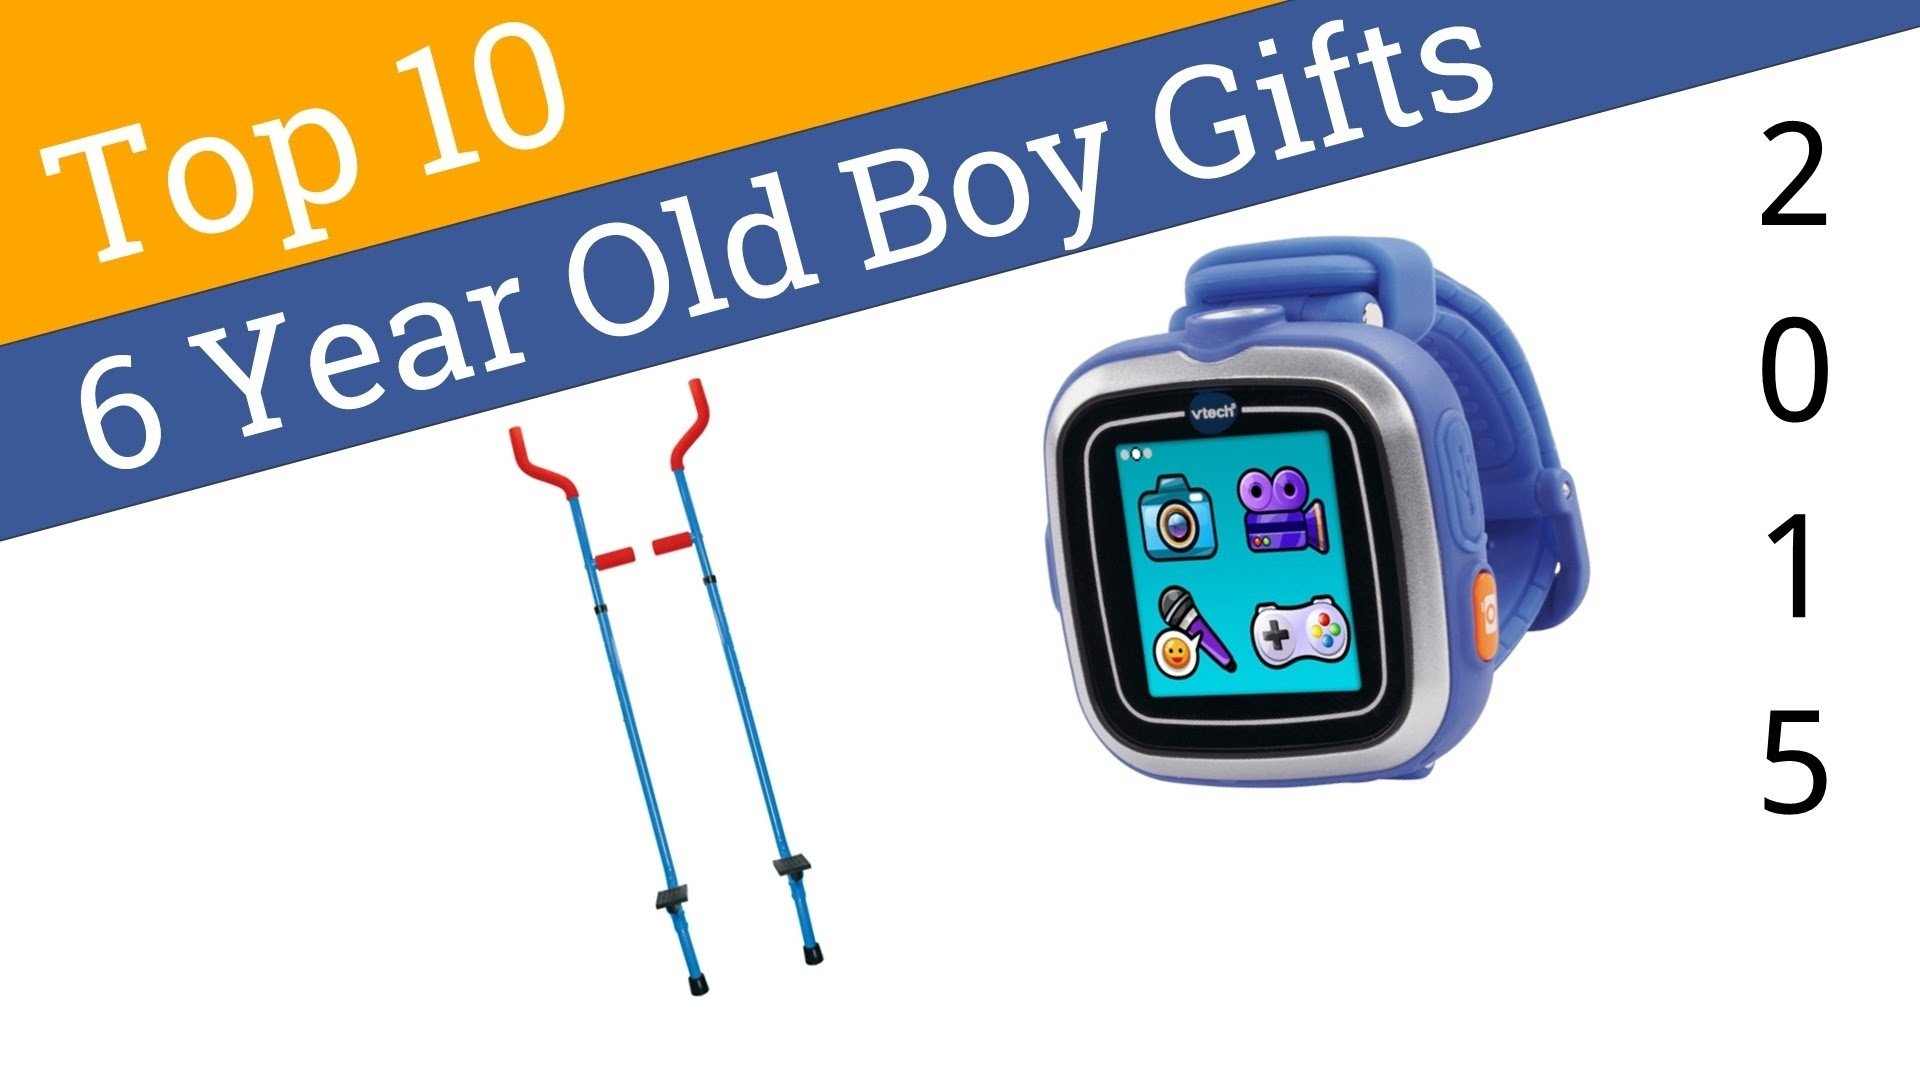 10 best 6 year old boy gifts 2015 - youtube